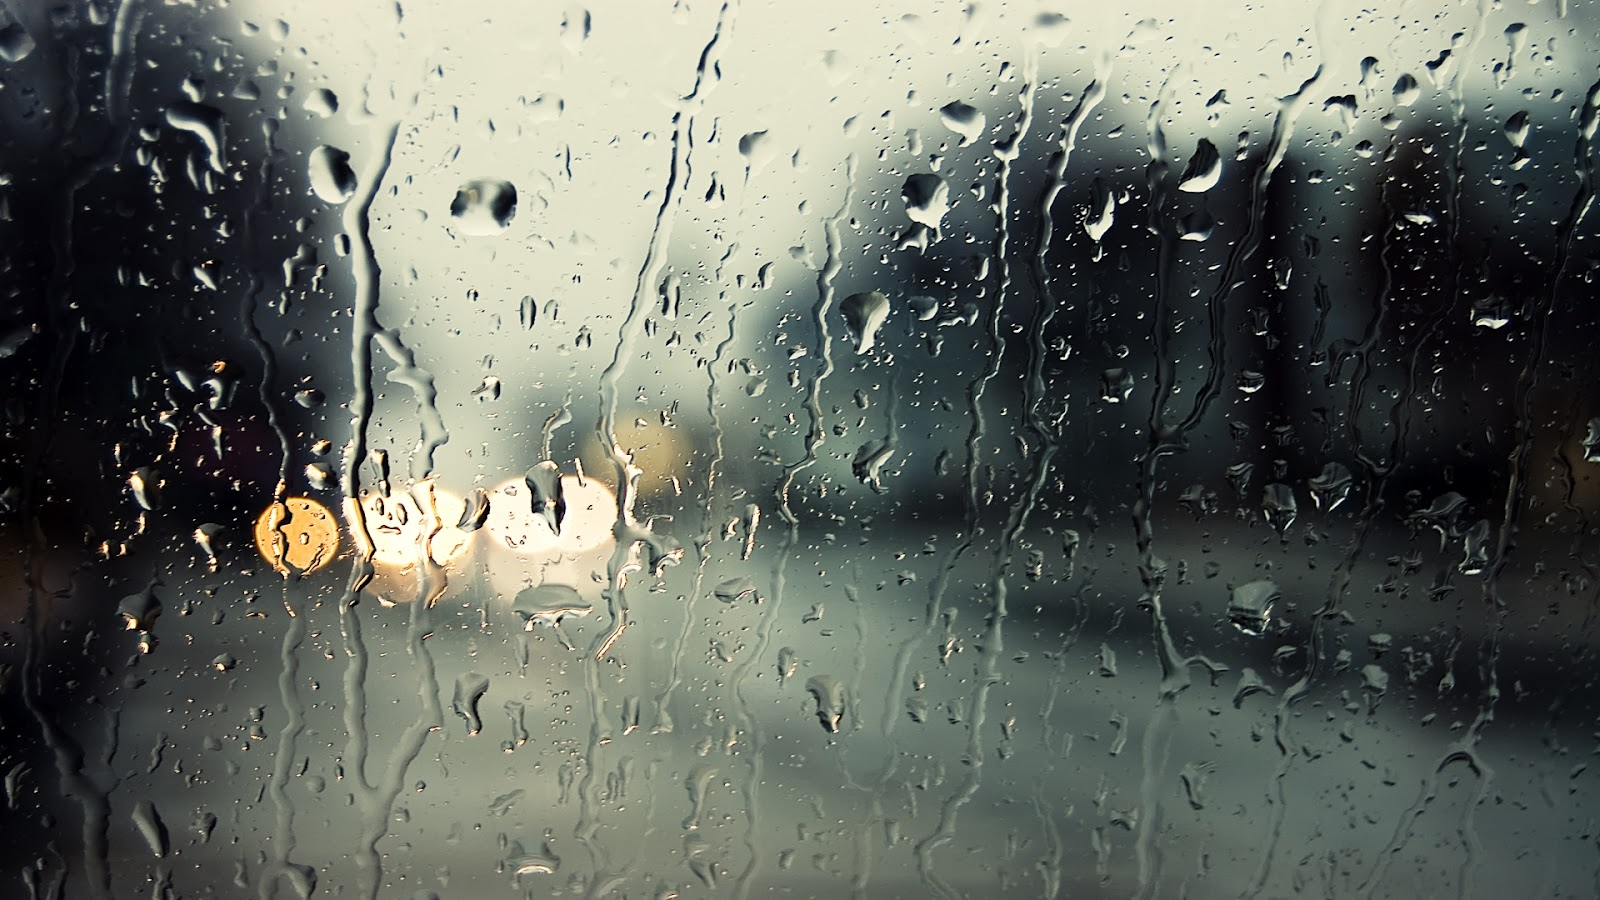 Rain_Drops_on_Window_HD_Desktop_Wallpaper